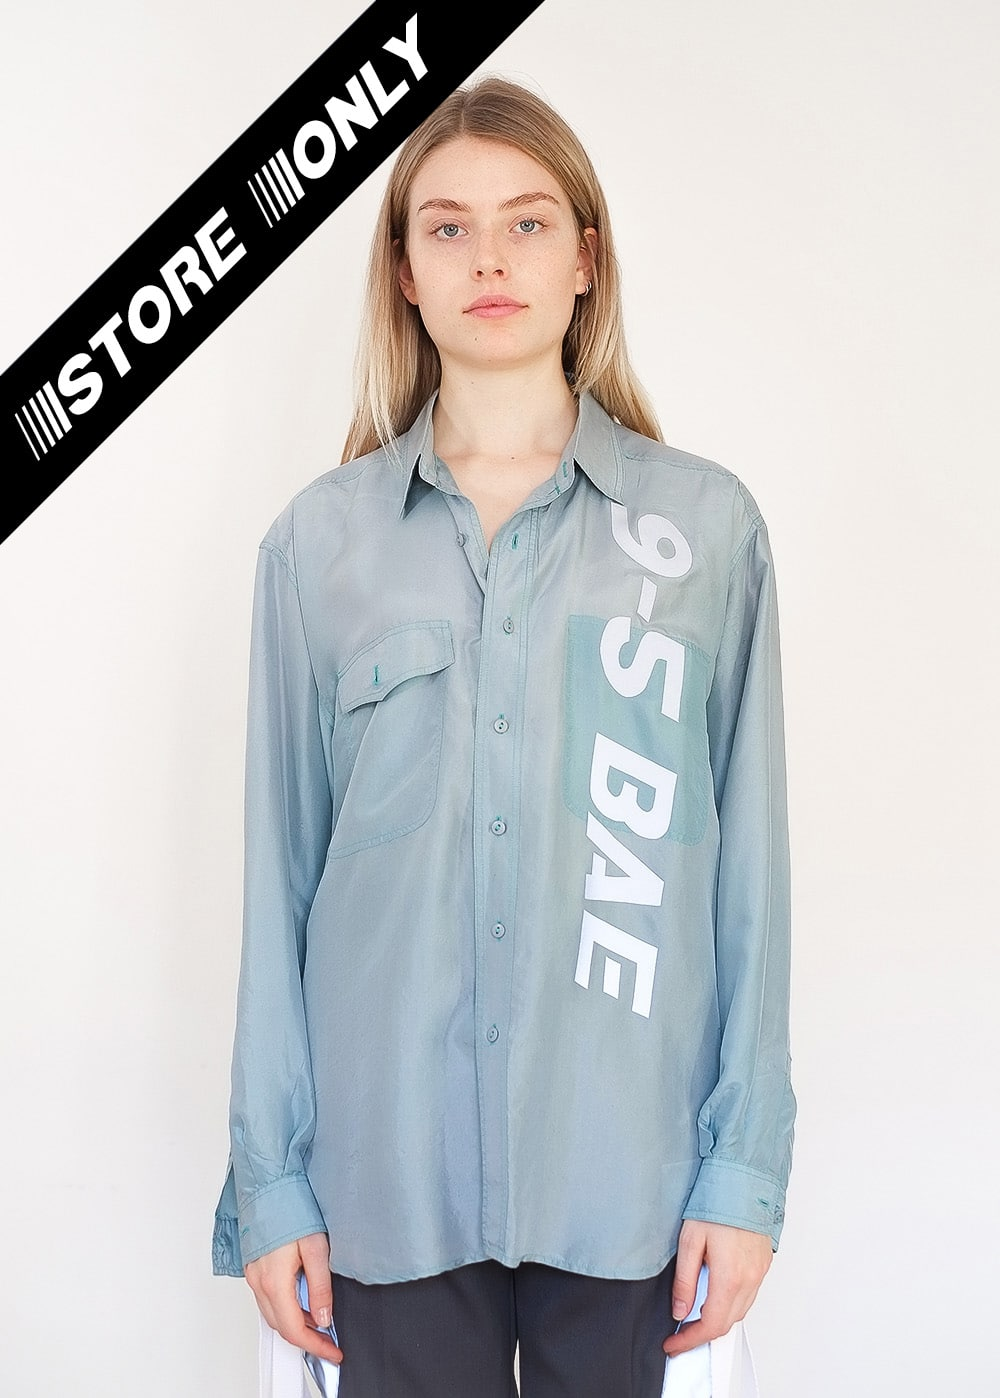 Reworked Reflective Silk Shirt 343